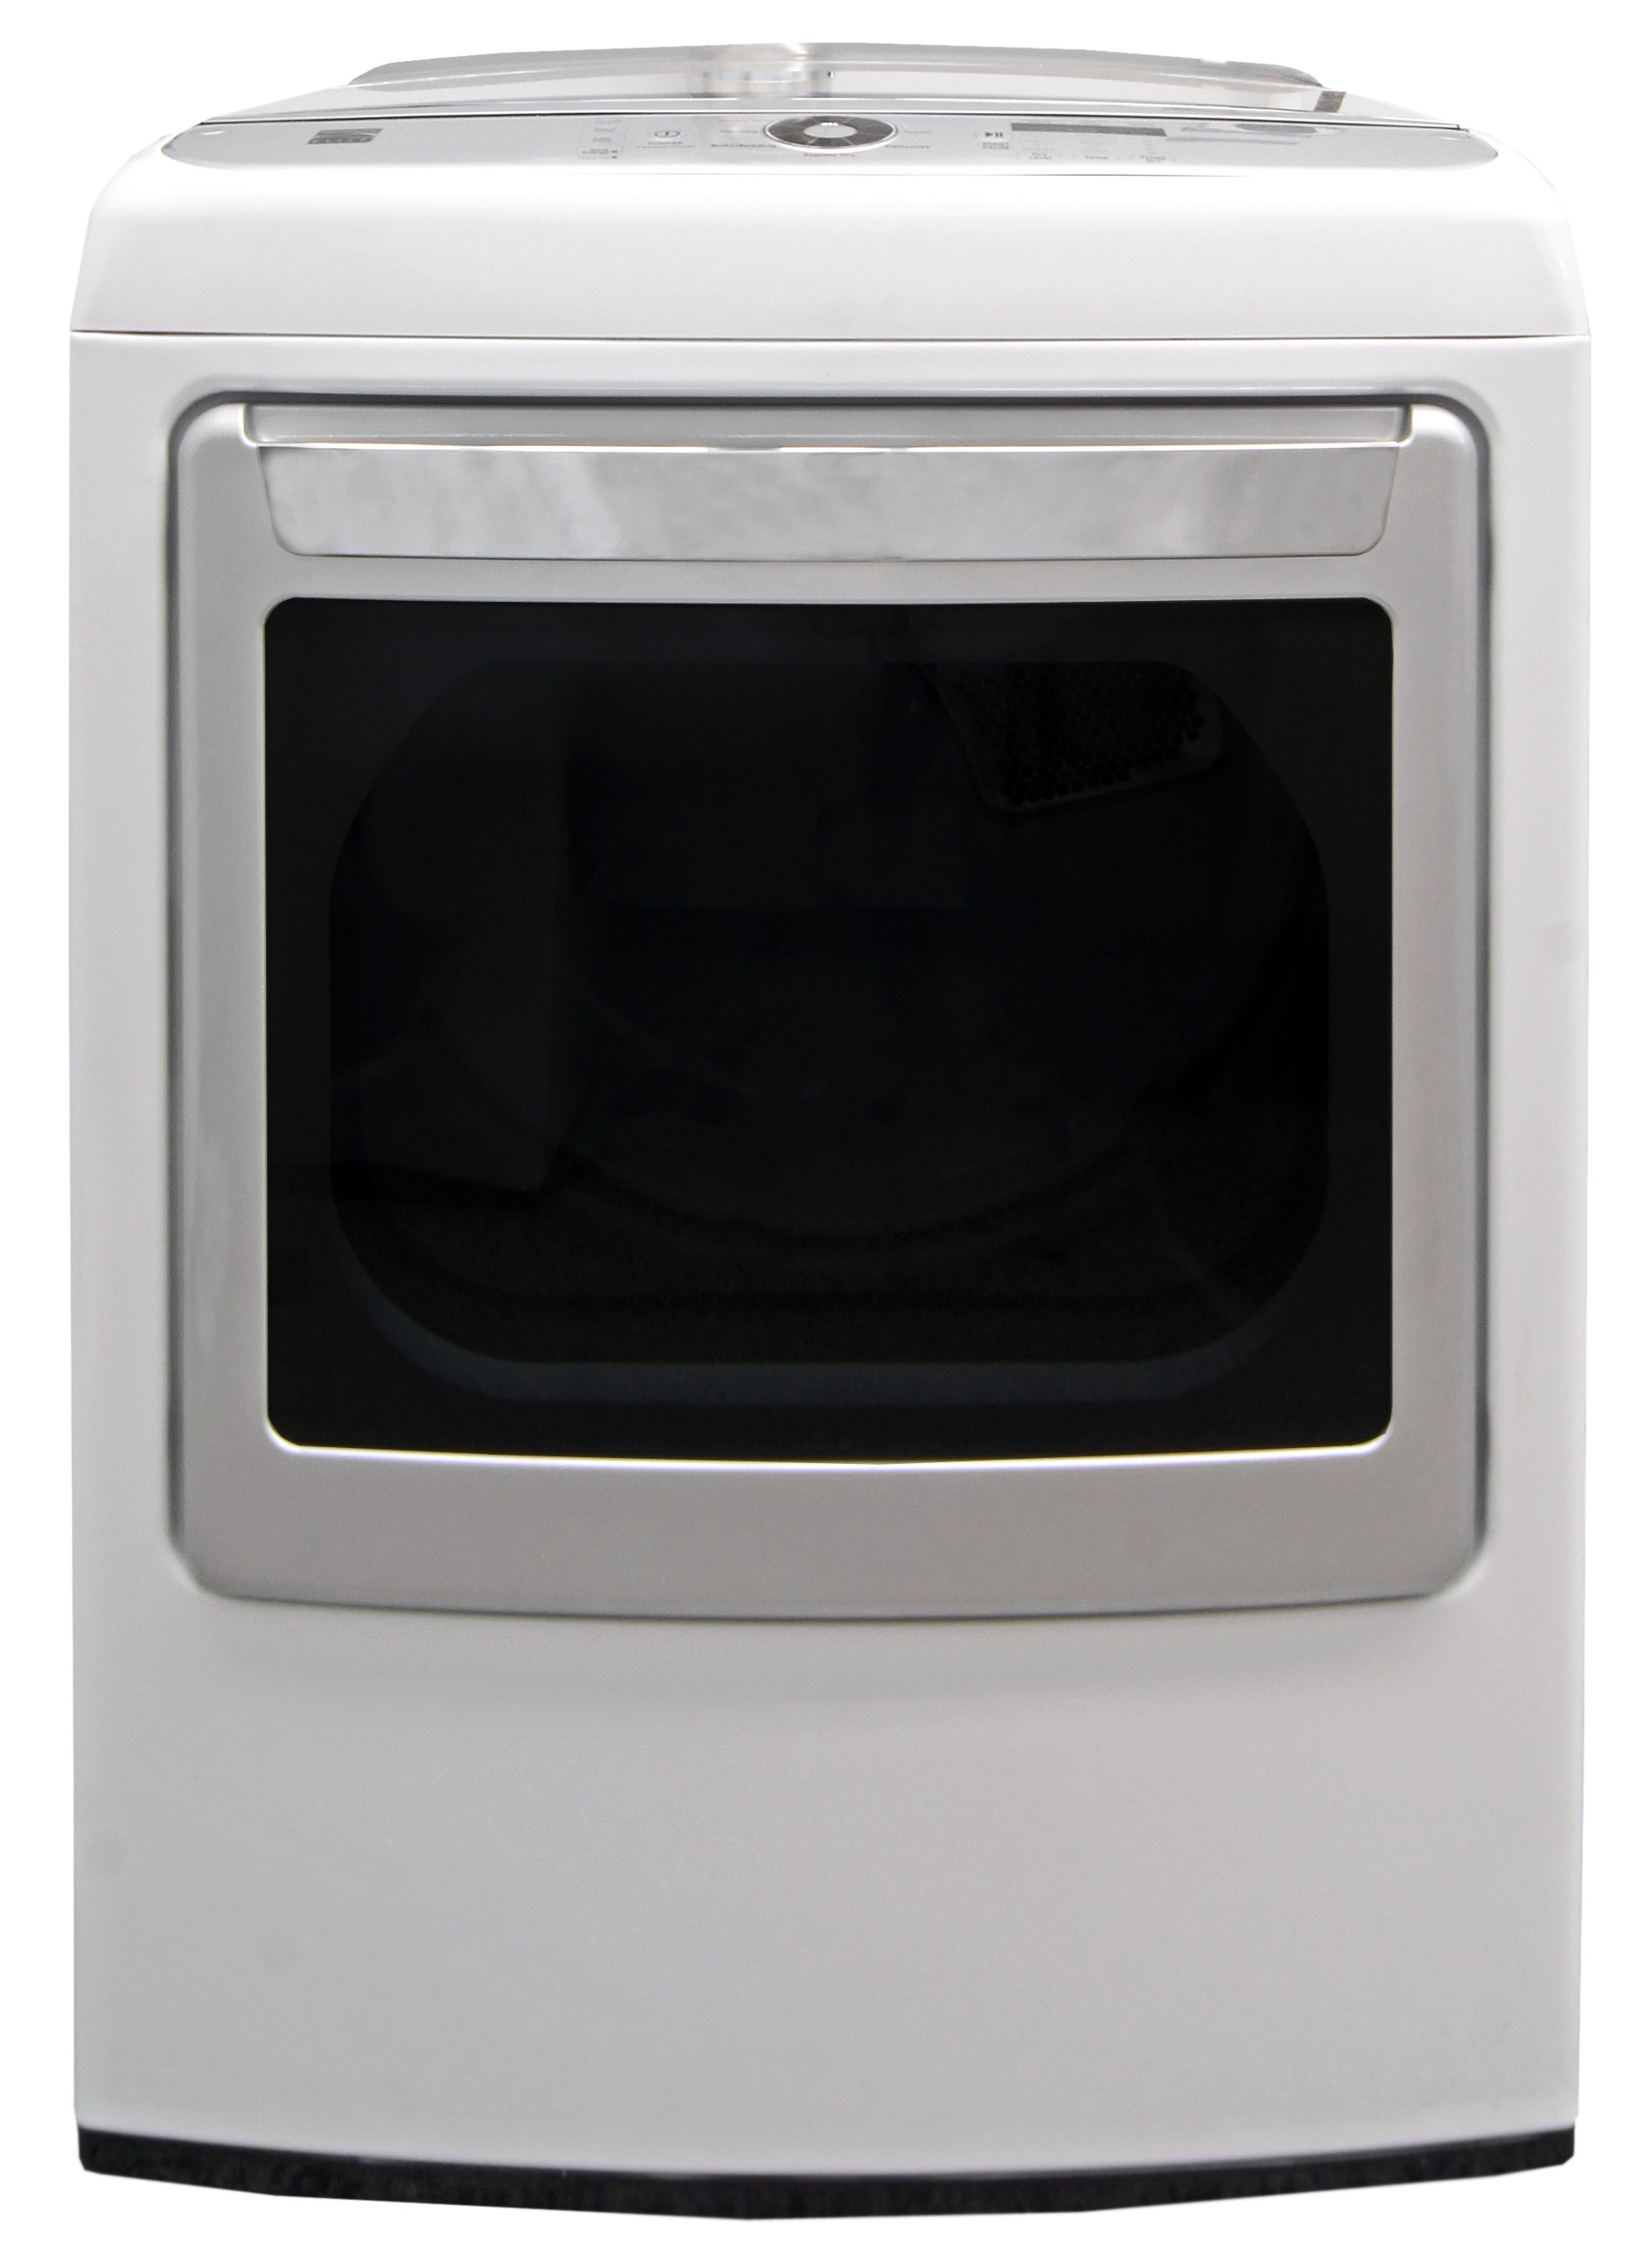 The Kenmore Elite 61422's unusual design gives a straightforward appliance some personality.